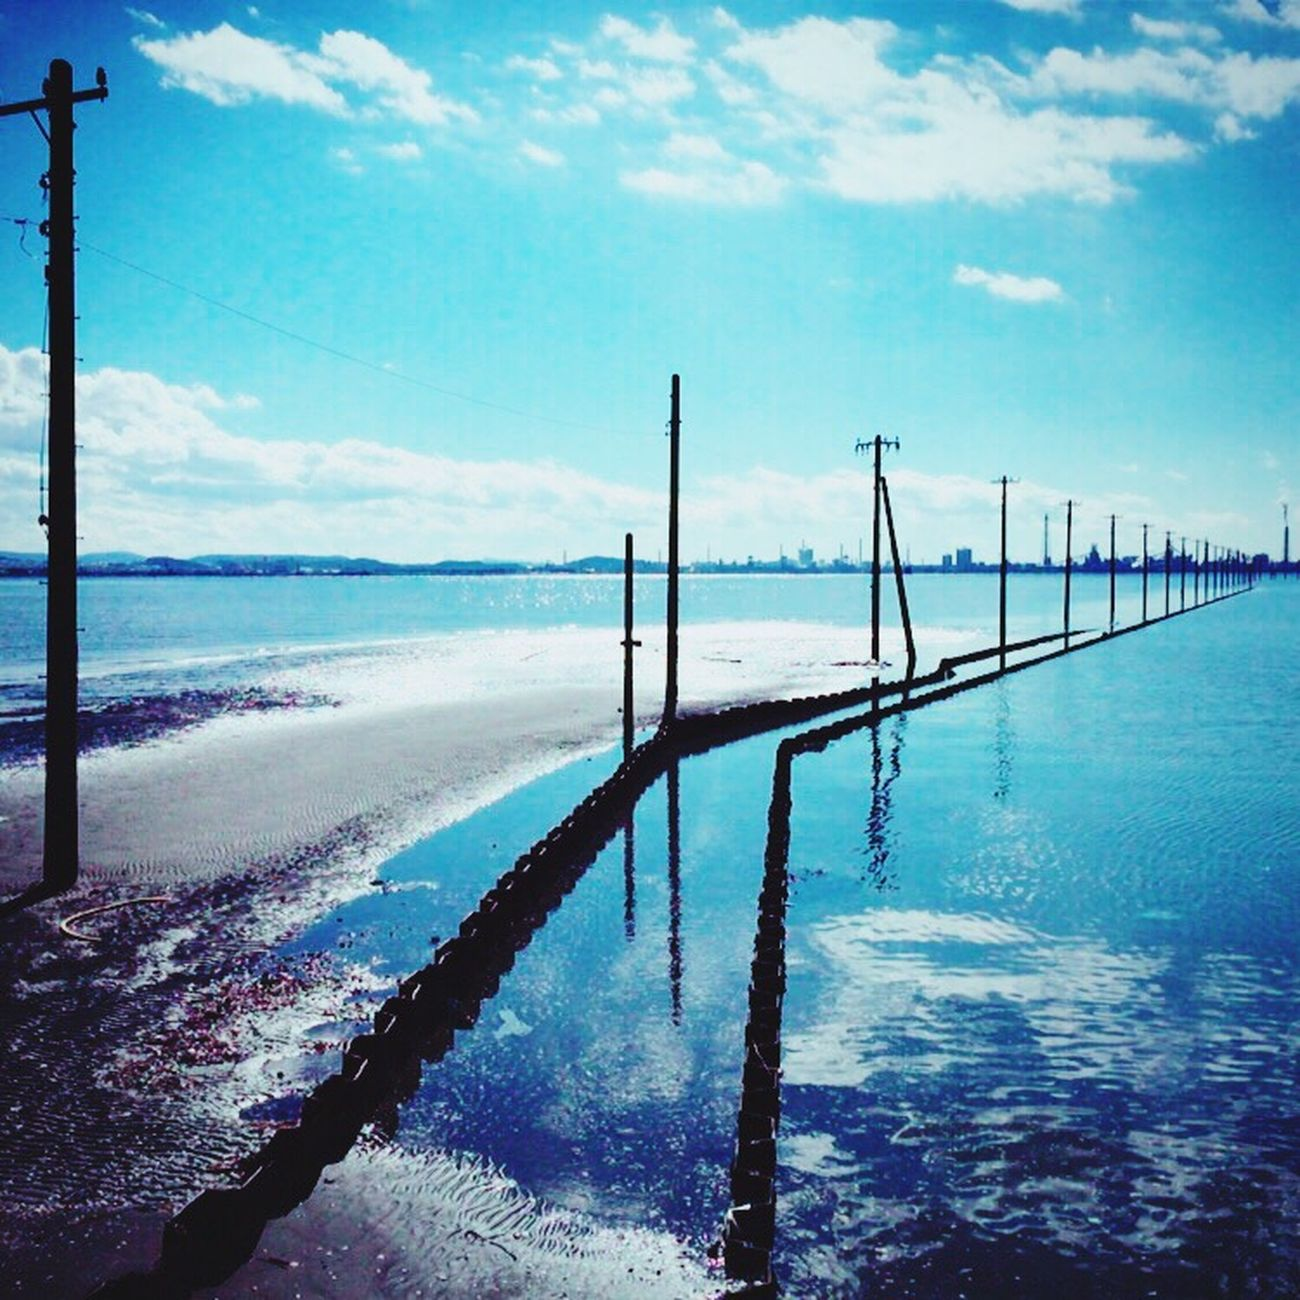 江川海岸 Japan Beautiful Egawa Kaigan First Eyeem Photo Sea And Sky Seaview Sea_collection Nature Photography EyeEm Best Shots Nature_collection Eye Em Nature Lover Nature Sky Sky_collection Sky And Clouds Like